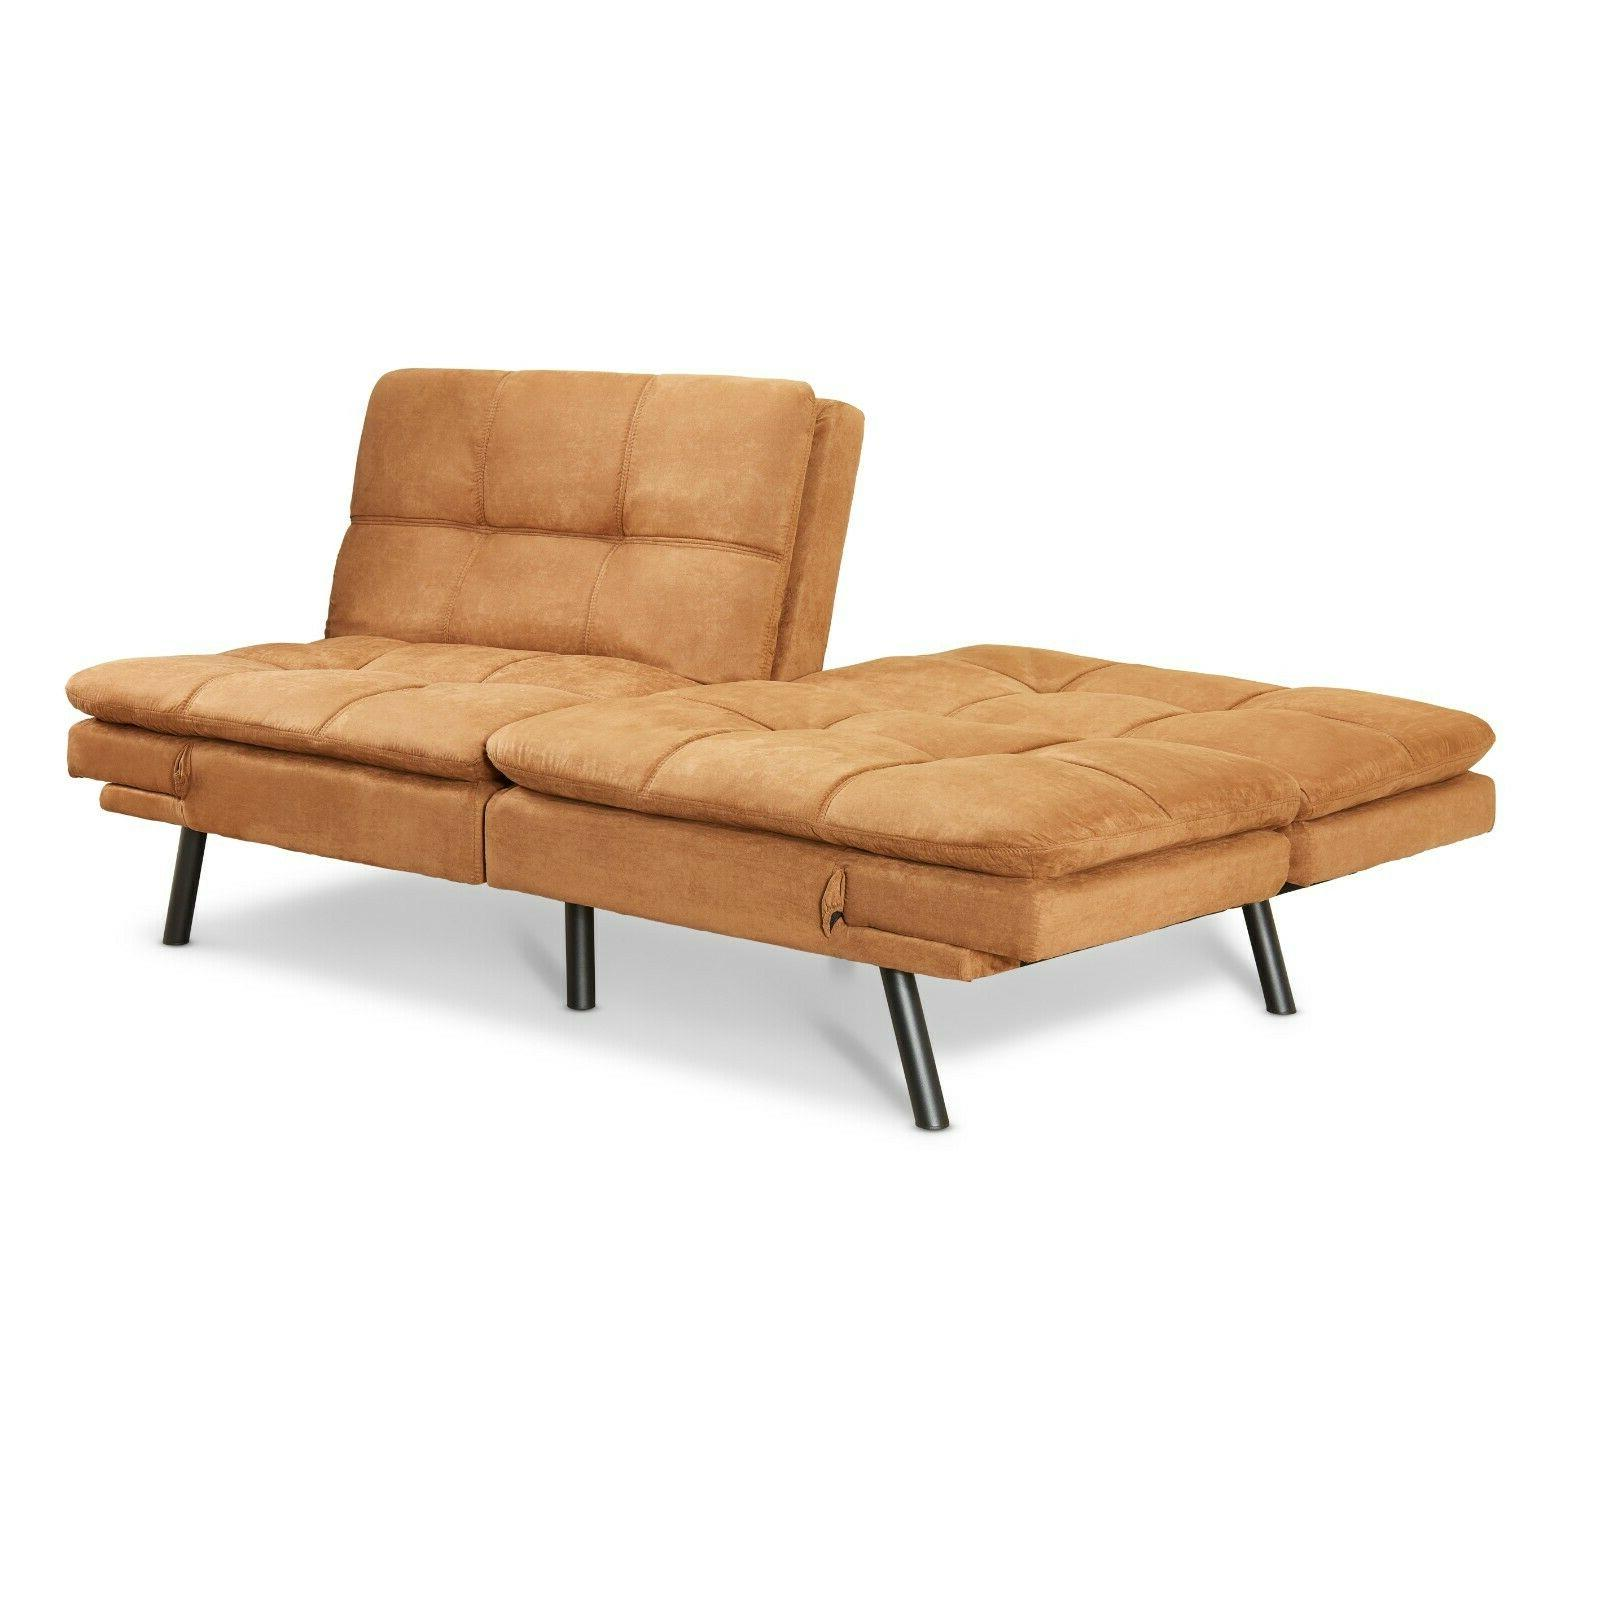 FULL Size Memory Foam Futon Sofa Bed Couch